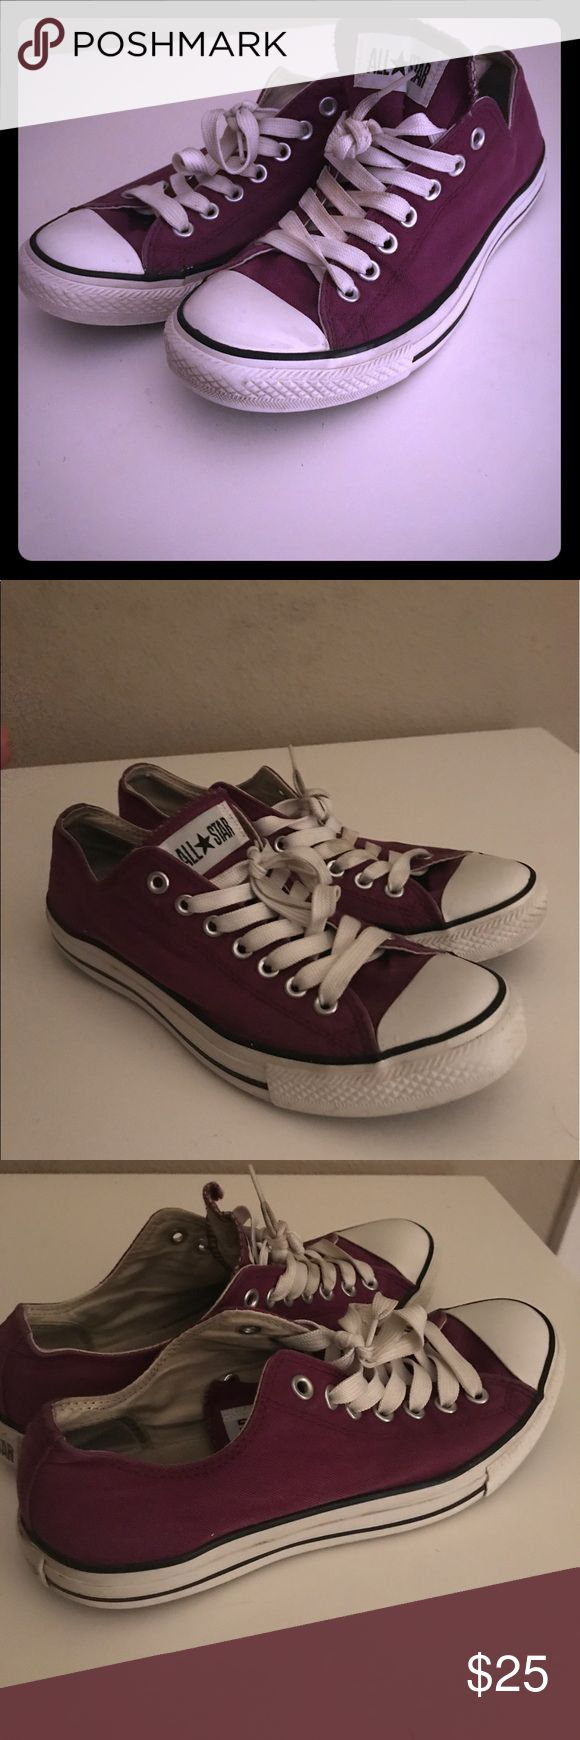 Vintage Chuck Taylors, men's size 9 good condition Vintage Chuck Taylors Converse Shoes Sneakers